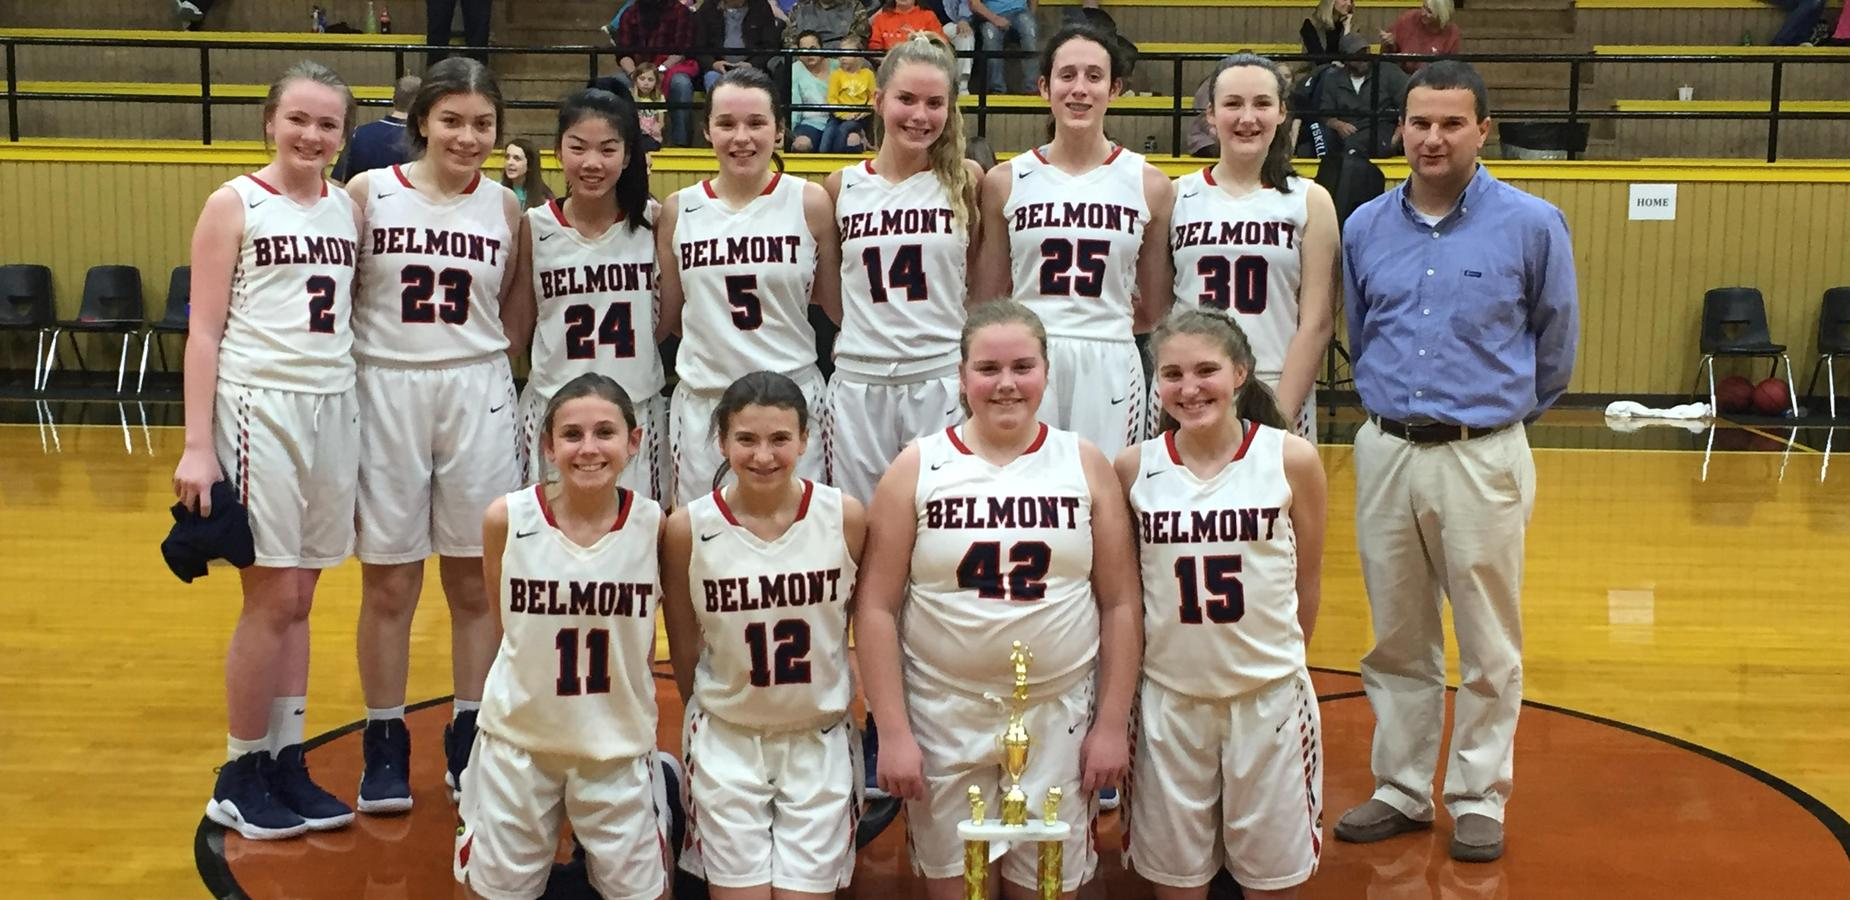 Belmont Girls Win 8th Grade County Tournament